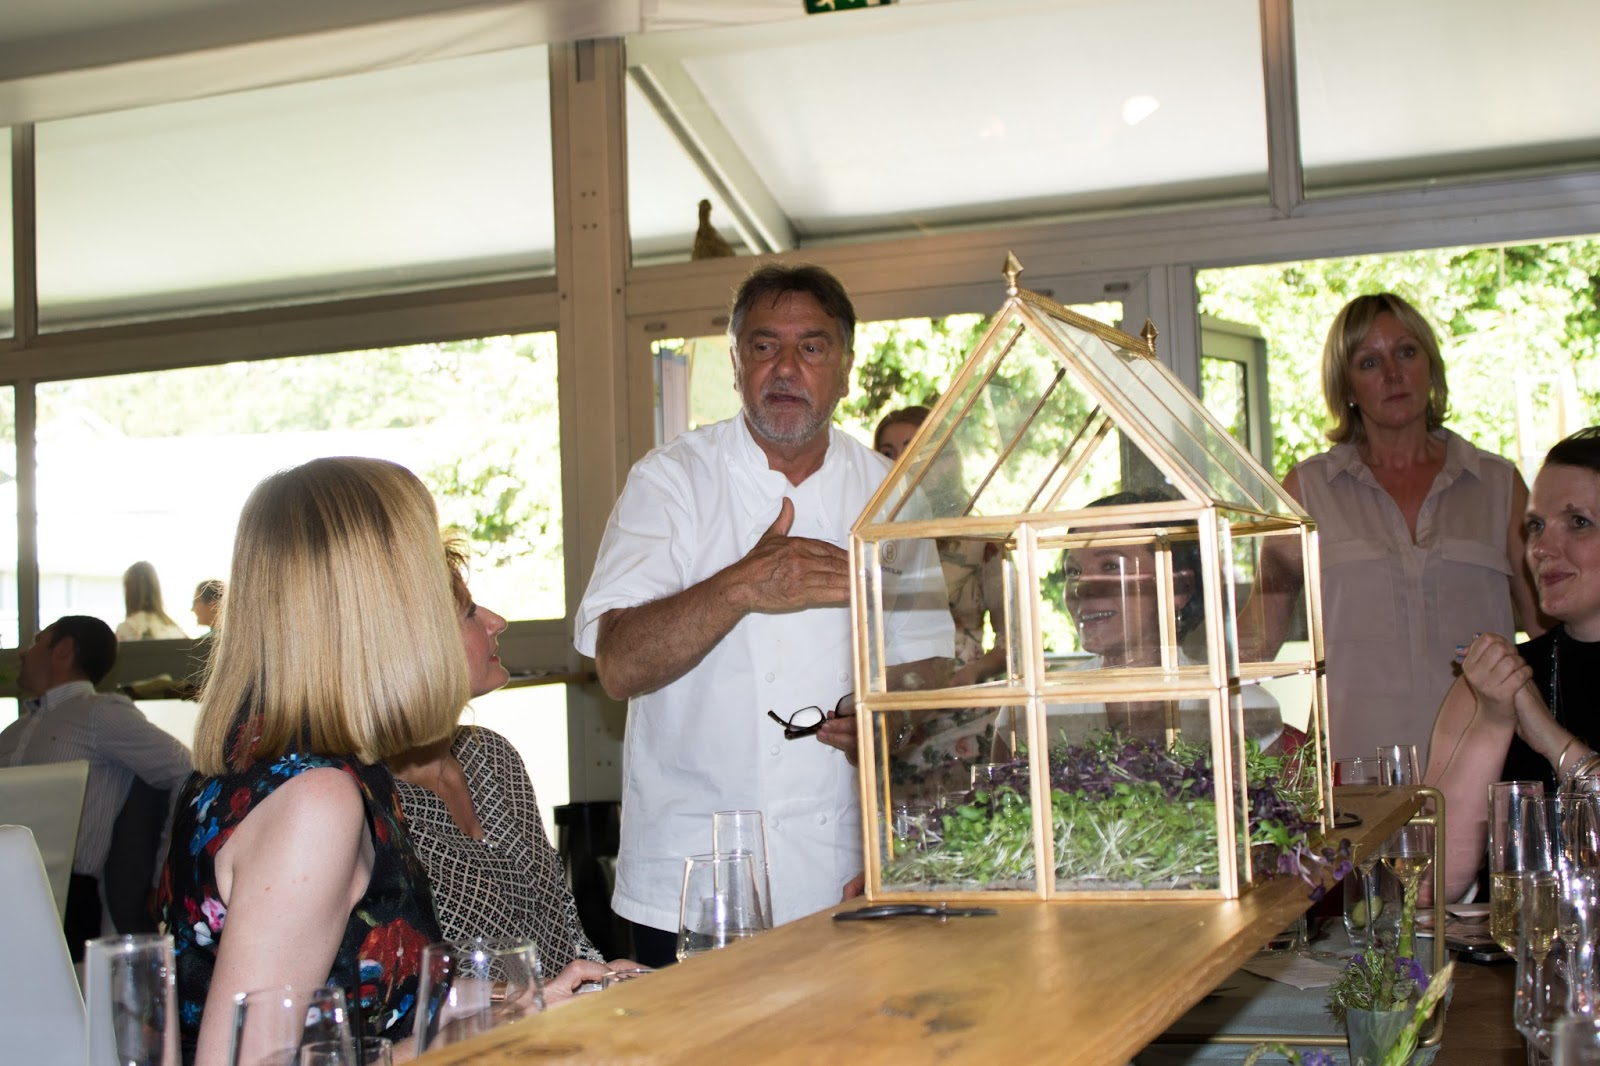 Raymond Blanc talking to guests at Chelsea Flower Show 2017